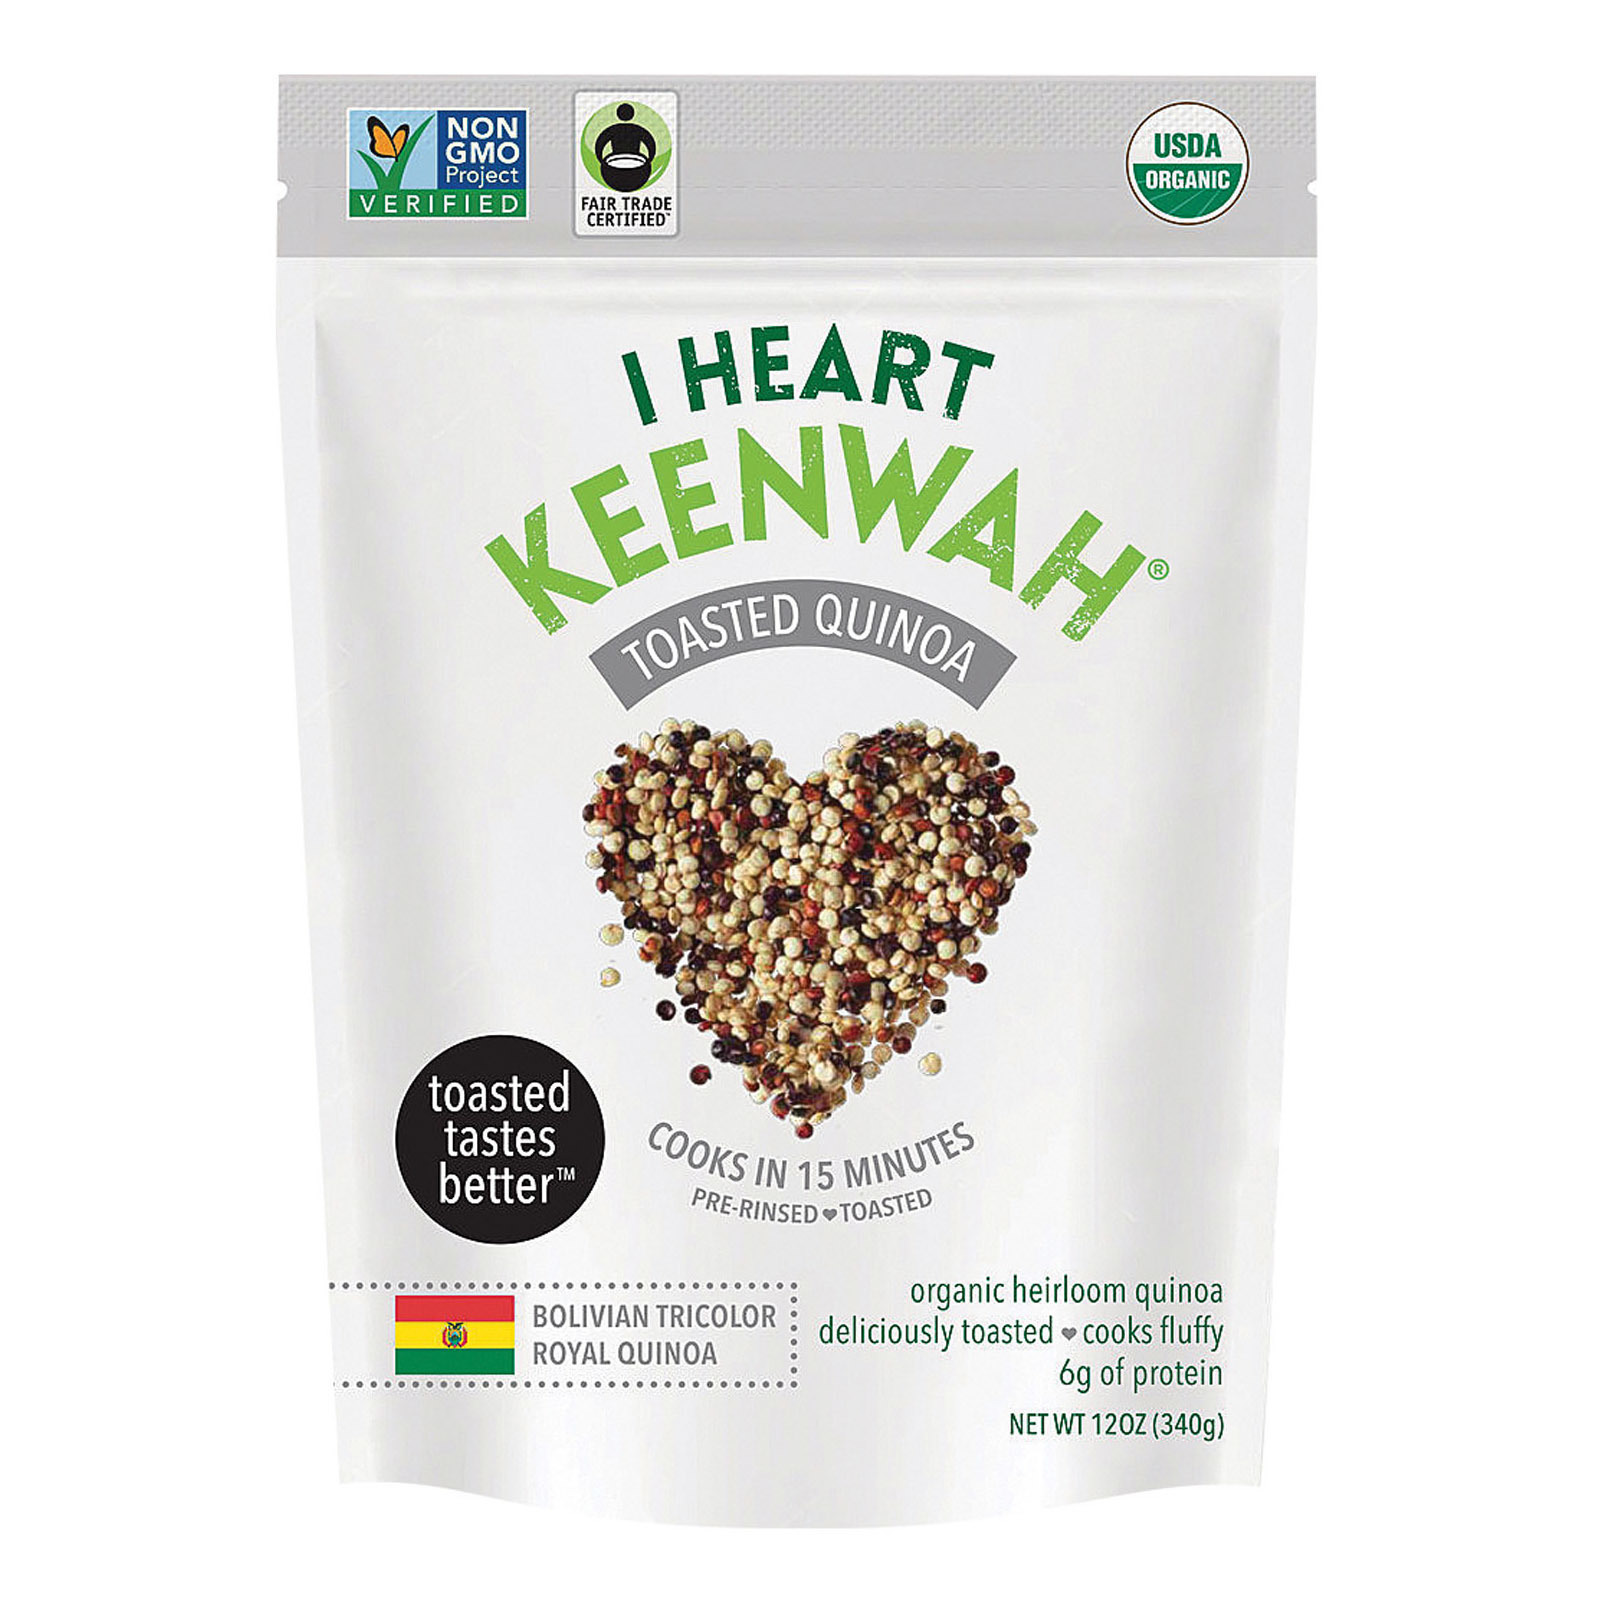 I Heart Keenwah Quinoa - Organic - Tricolor - Toasted - Case of 6 - 12 oz